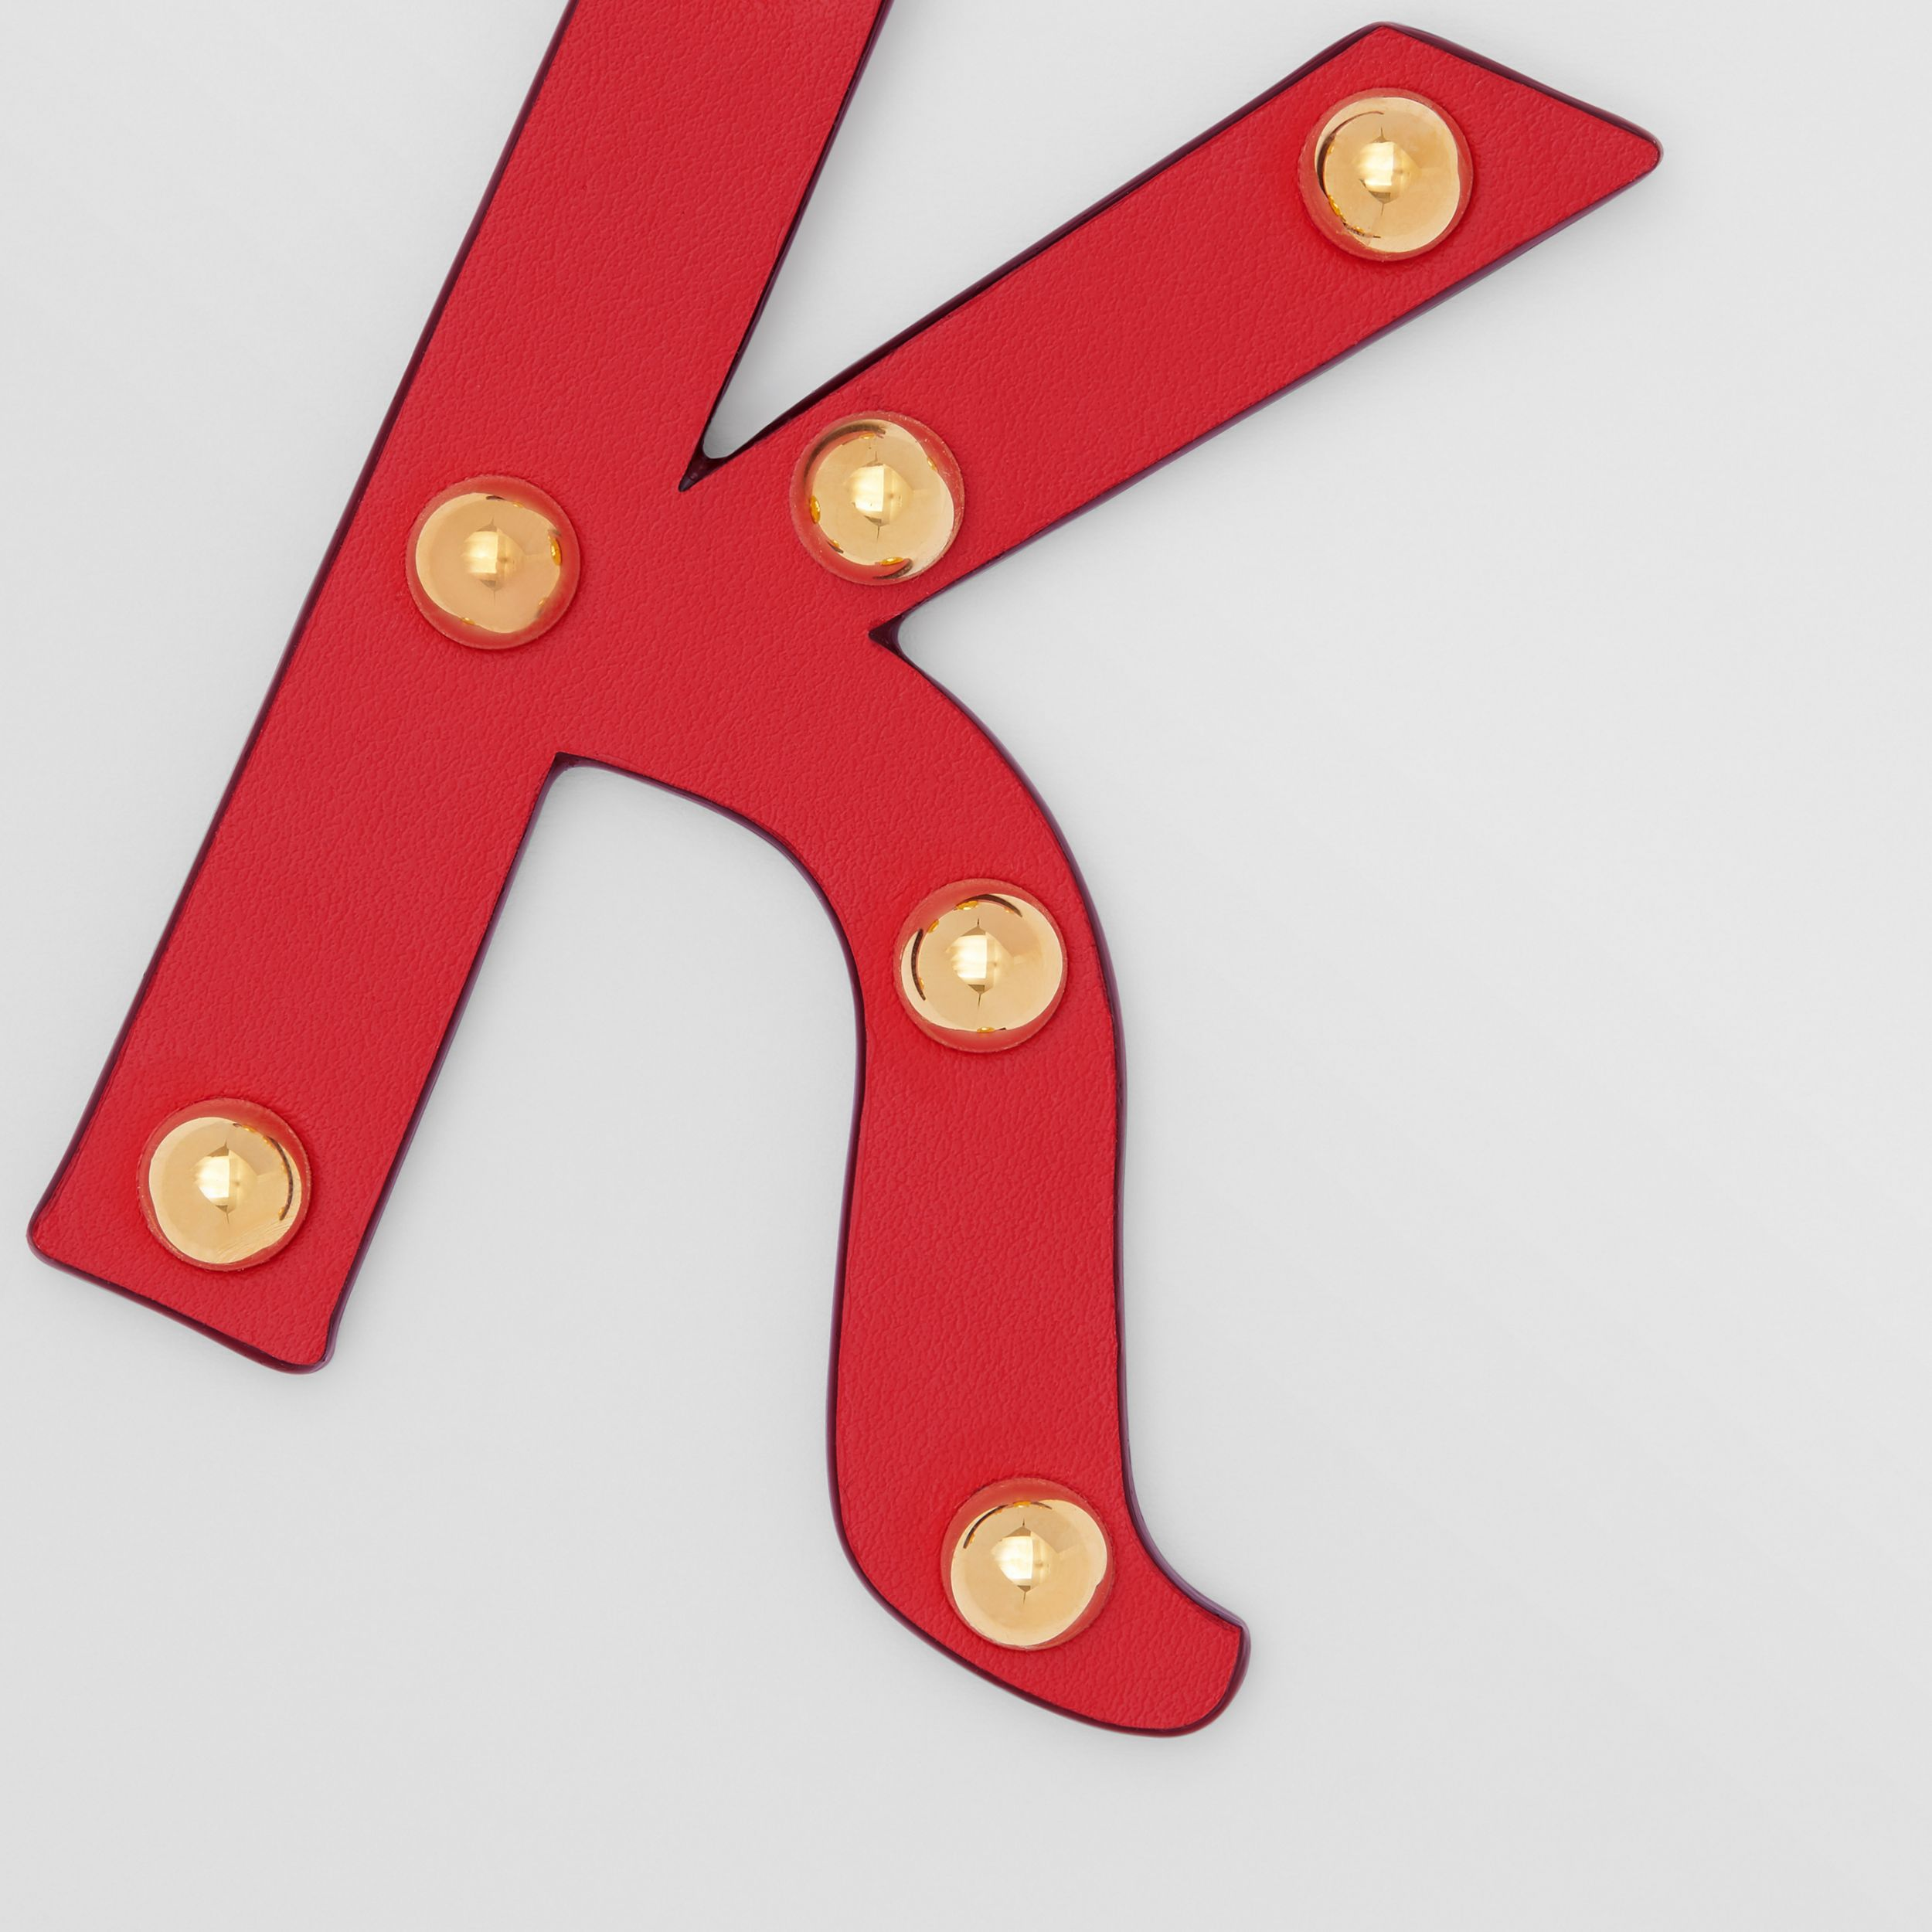 'K' Studded Leather Alphabet Charm in Red/light Gold - Women | Burberry Hong Kong S.A.R - 2